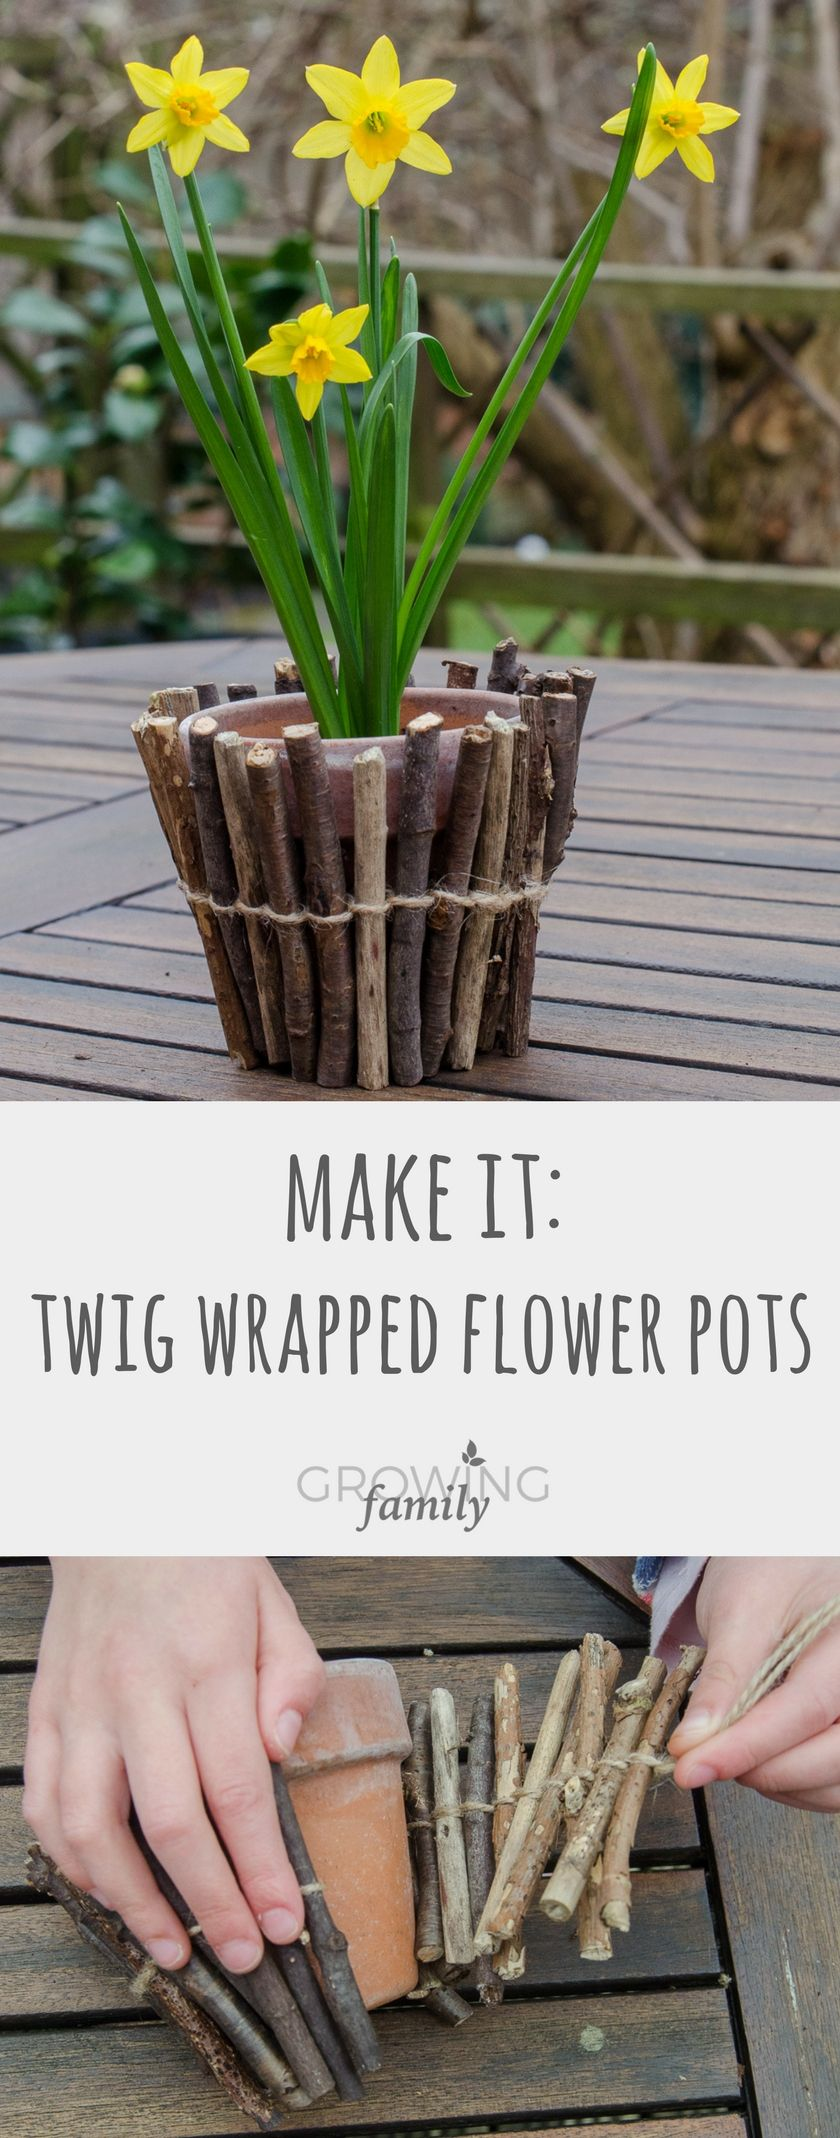 How to make twig-wrapped flower pots - Growing Family